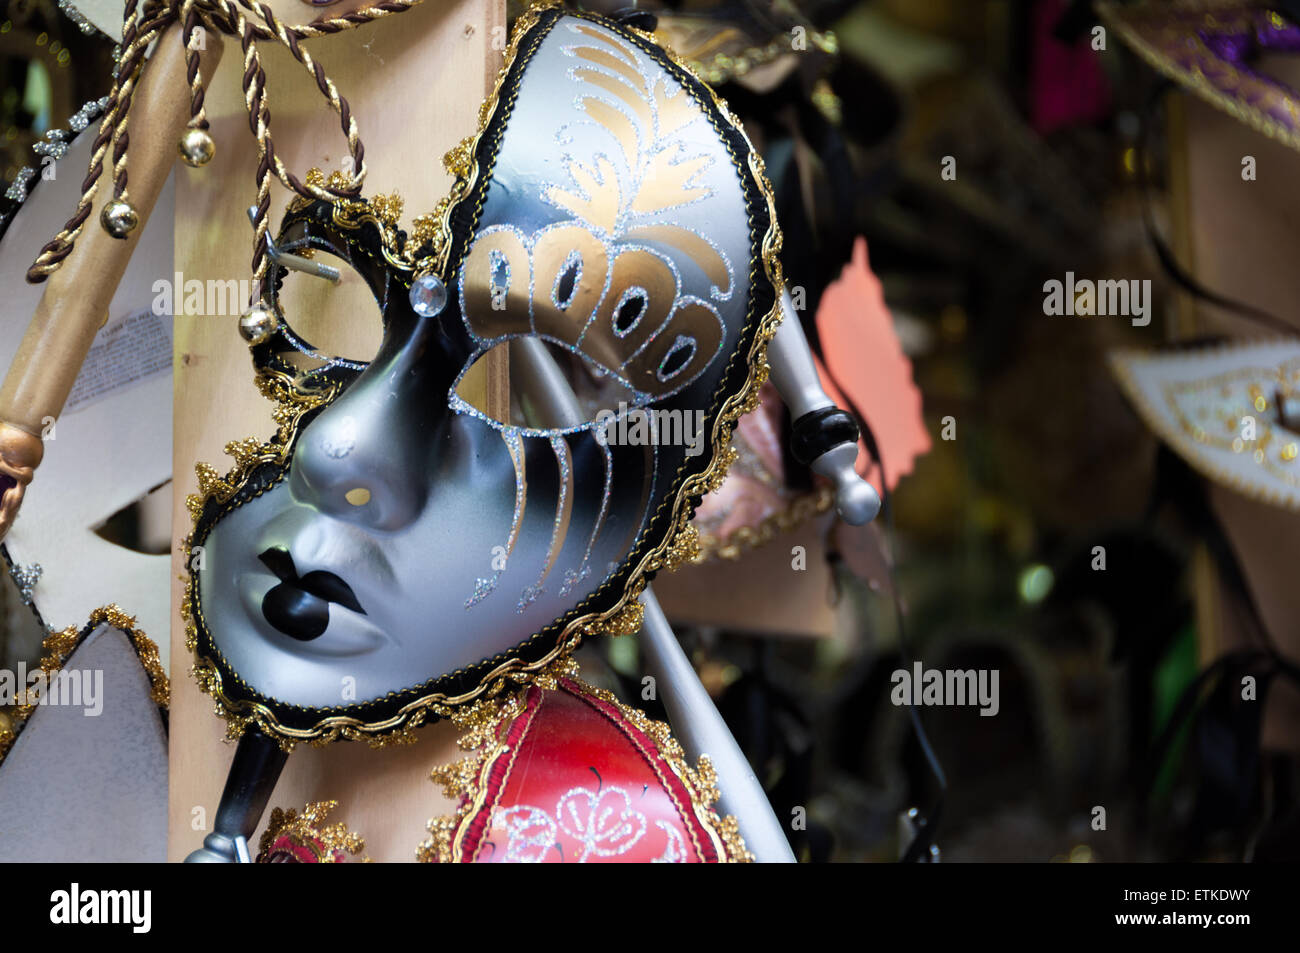 Venetian mask at the Mercato Centrale market in Florence, Italy - Stock Image